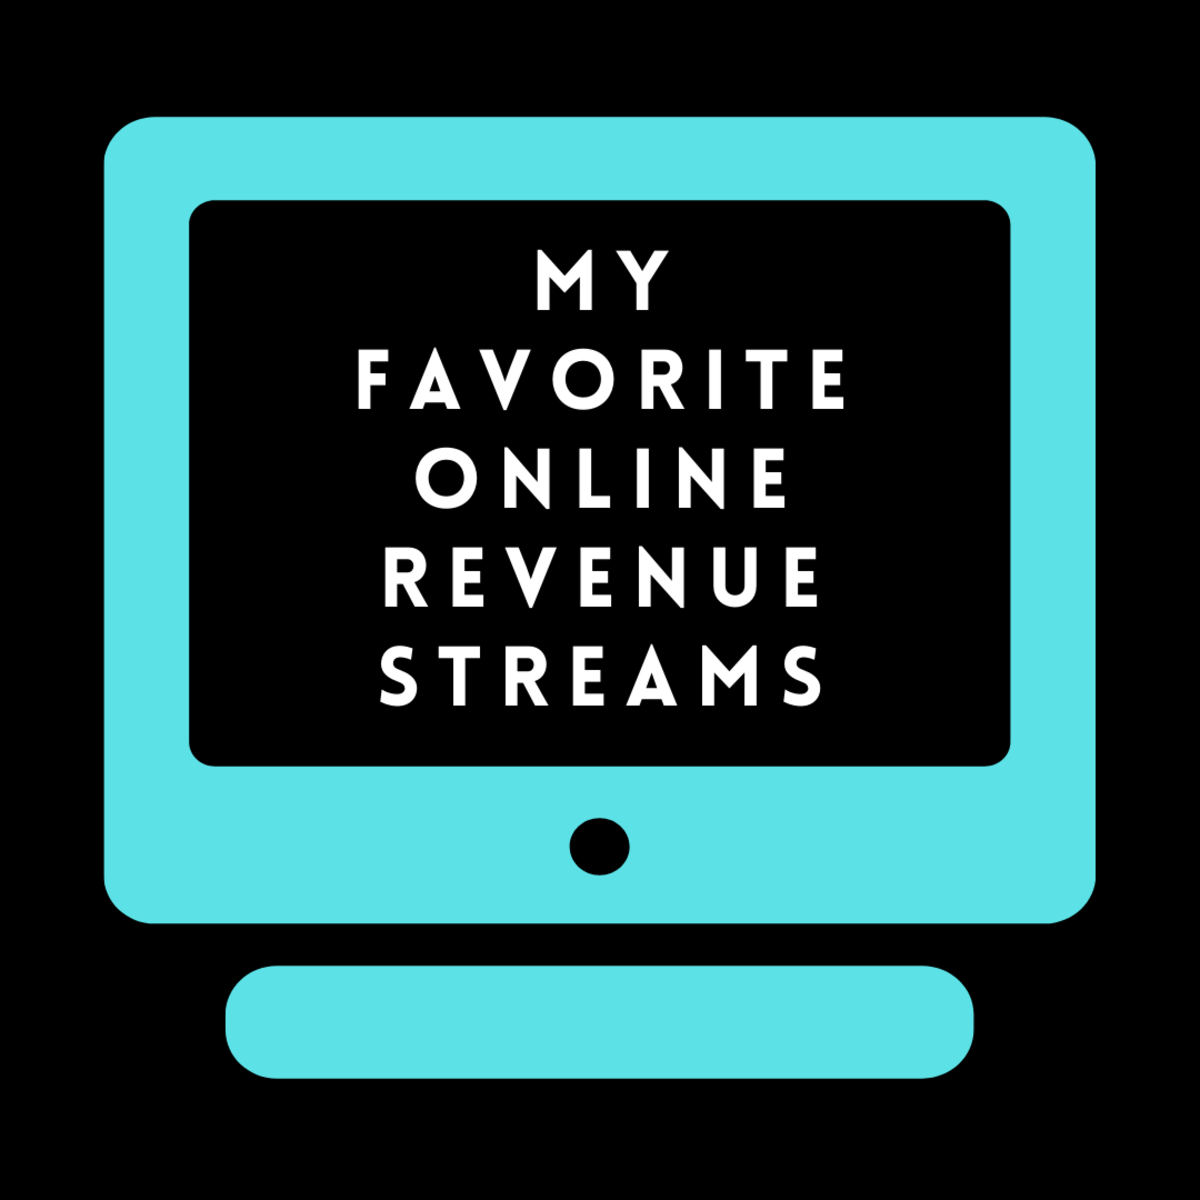 How to Make Money Online in 2020: My Favorite Revenue Streams